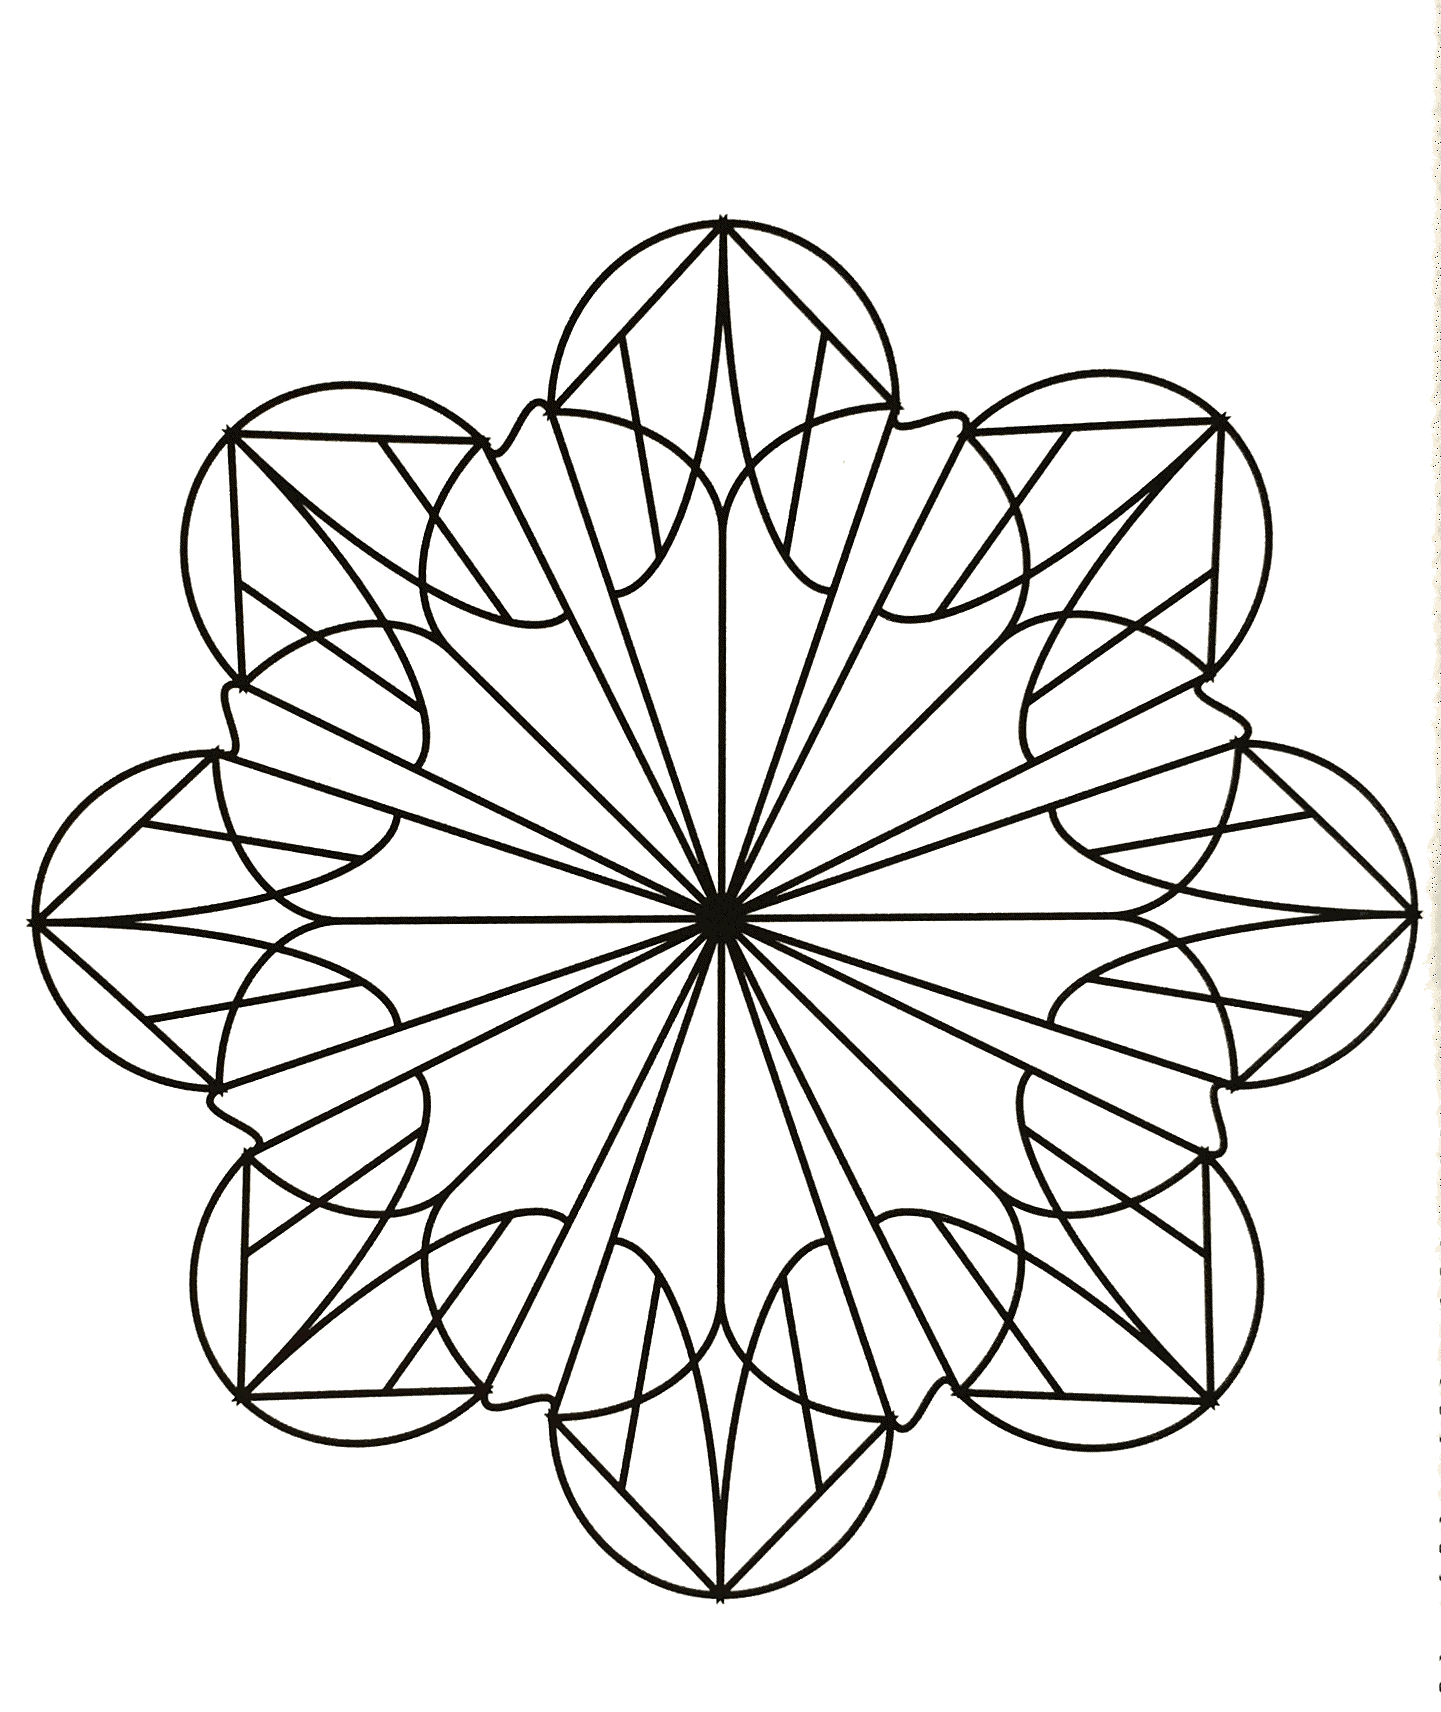 facile mandala fleur coloriage mandalas coloriages pour enfants. Black Bedroom Furniture Sets. Home Design Ideas